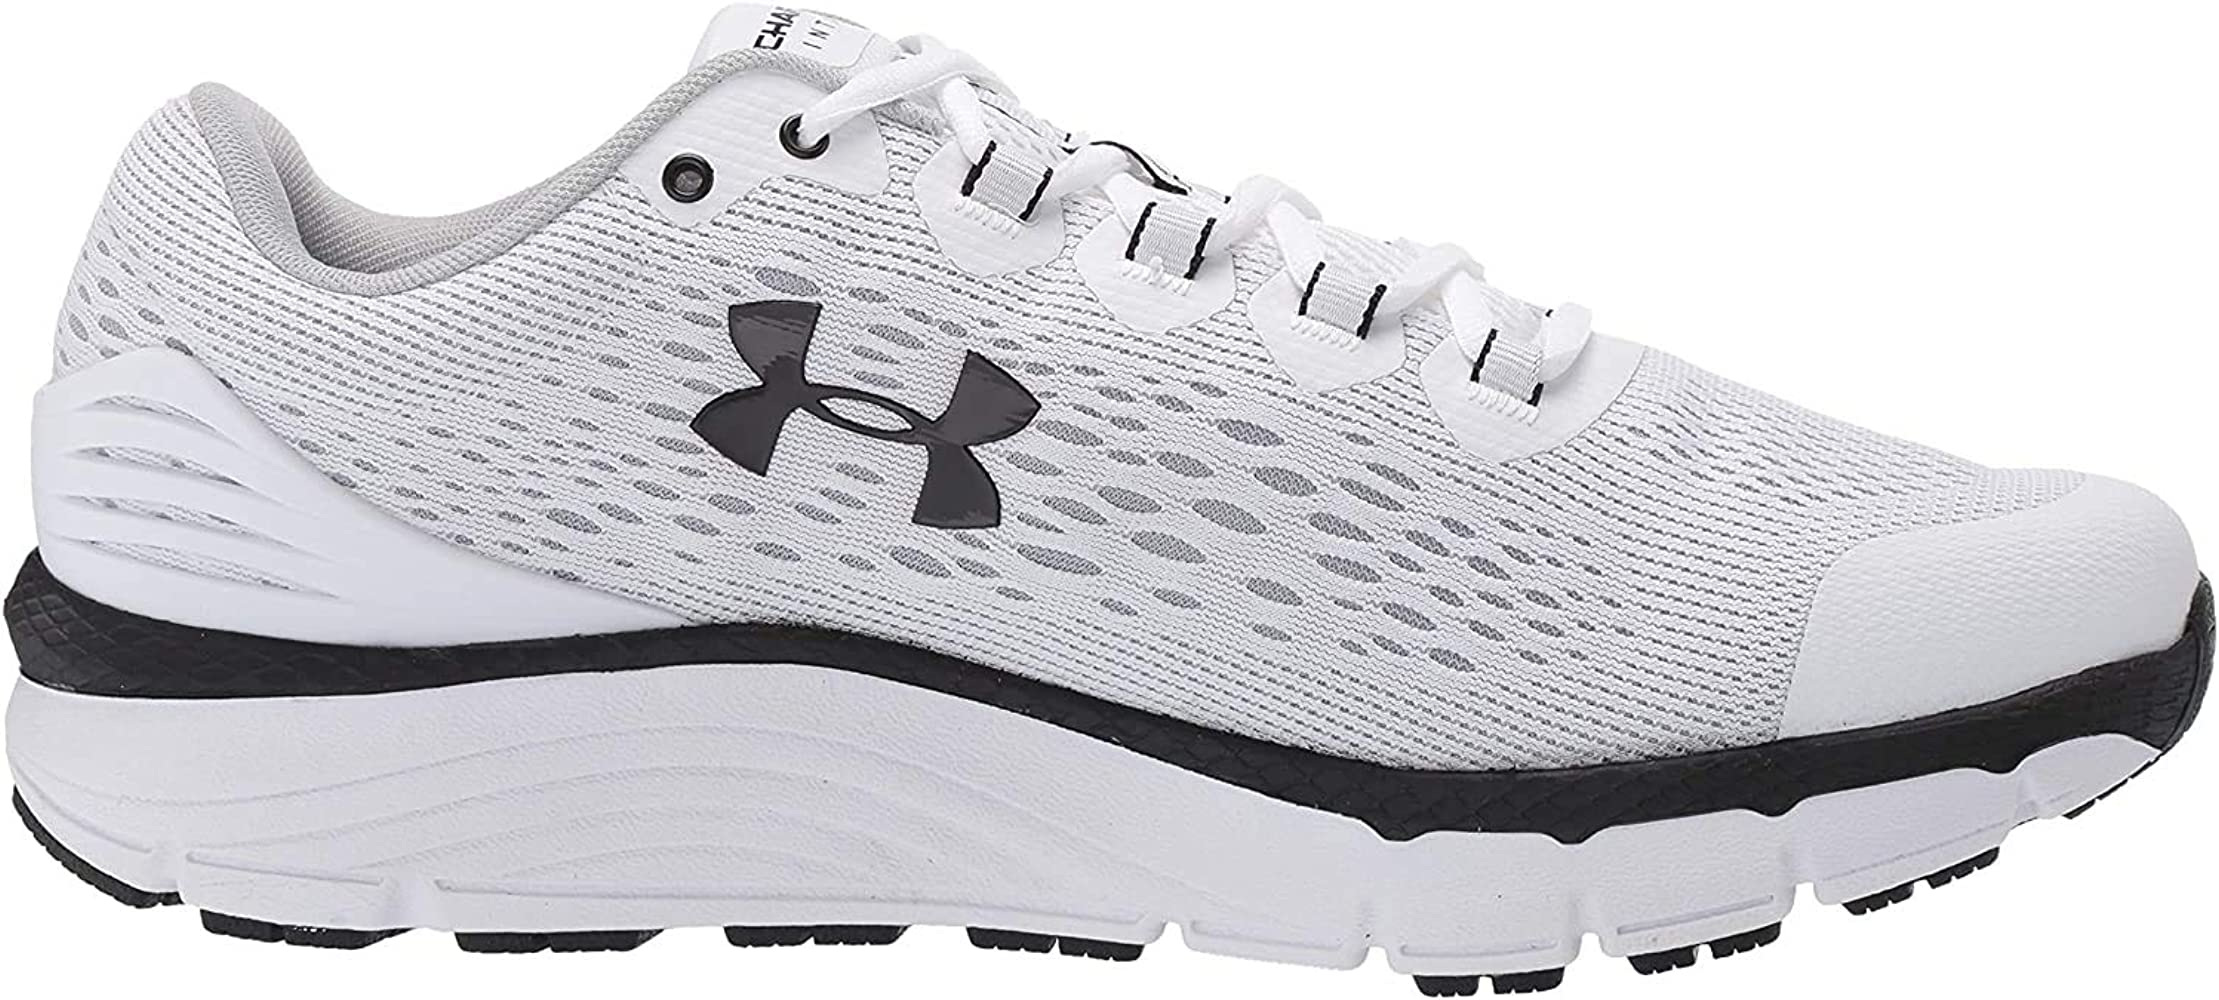 Under Armour Charged Escape 4 - Zapatillas para correr de mujer ...